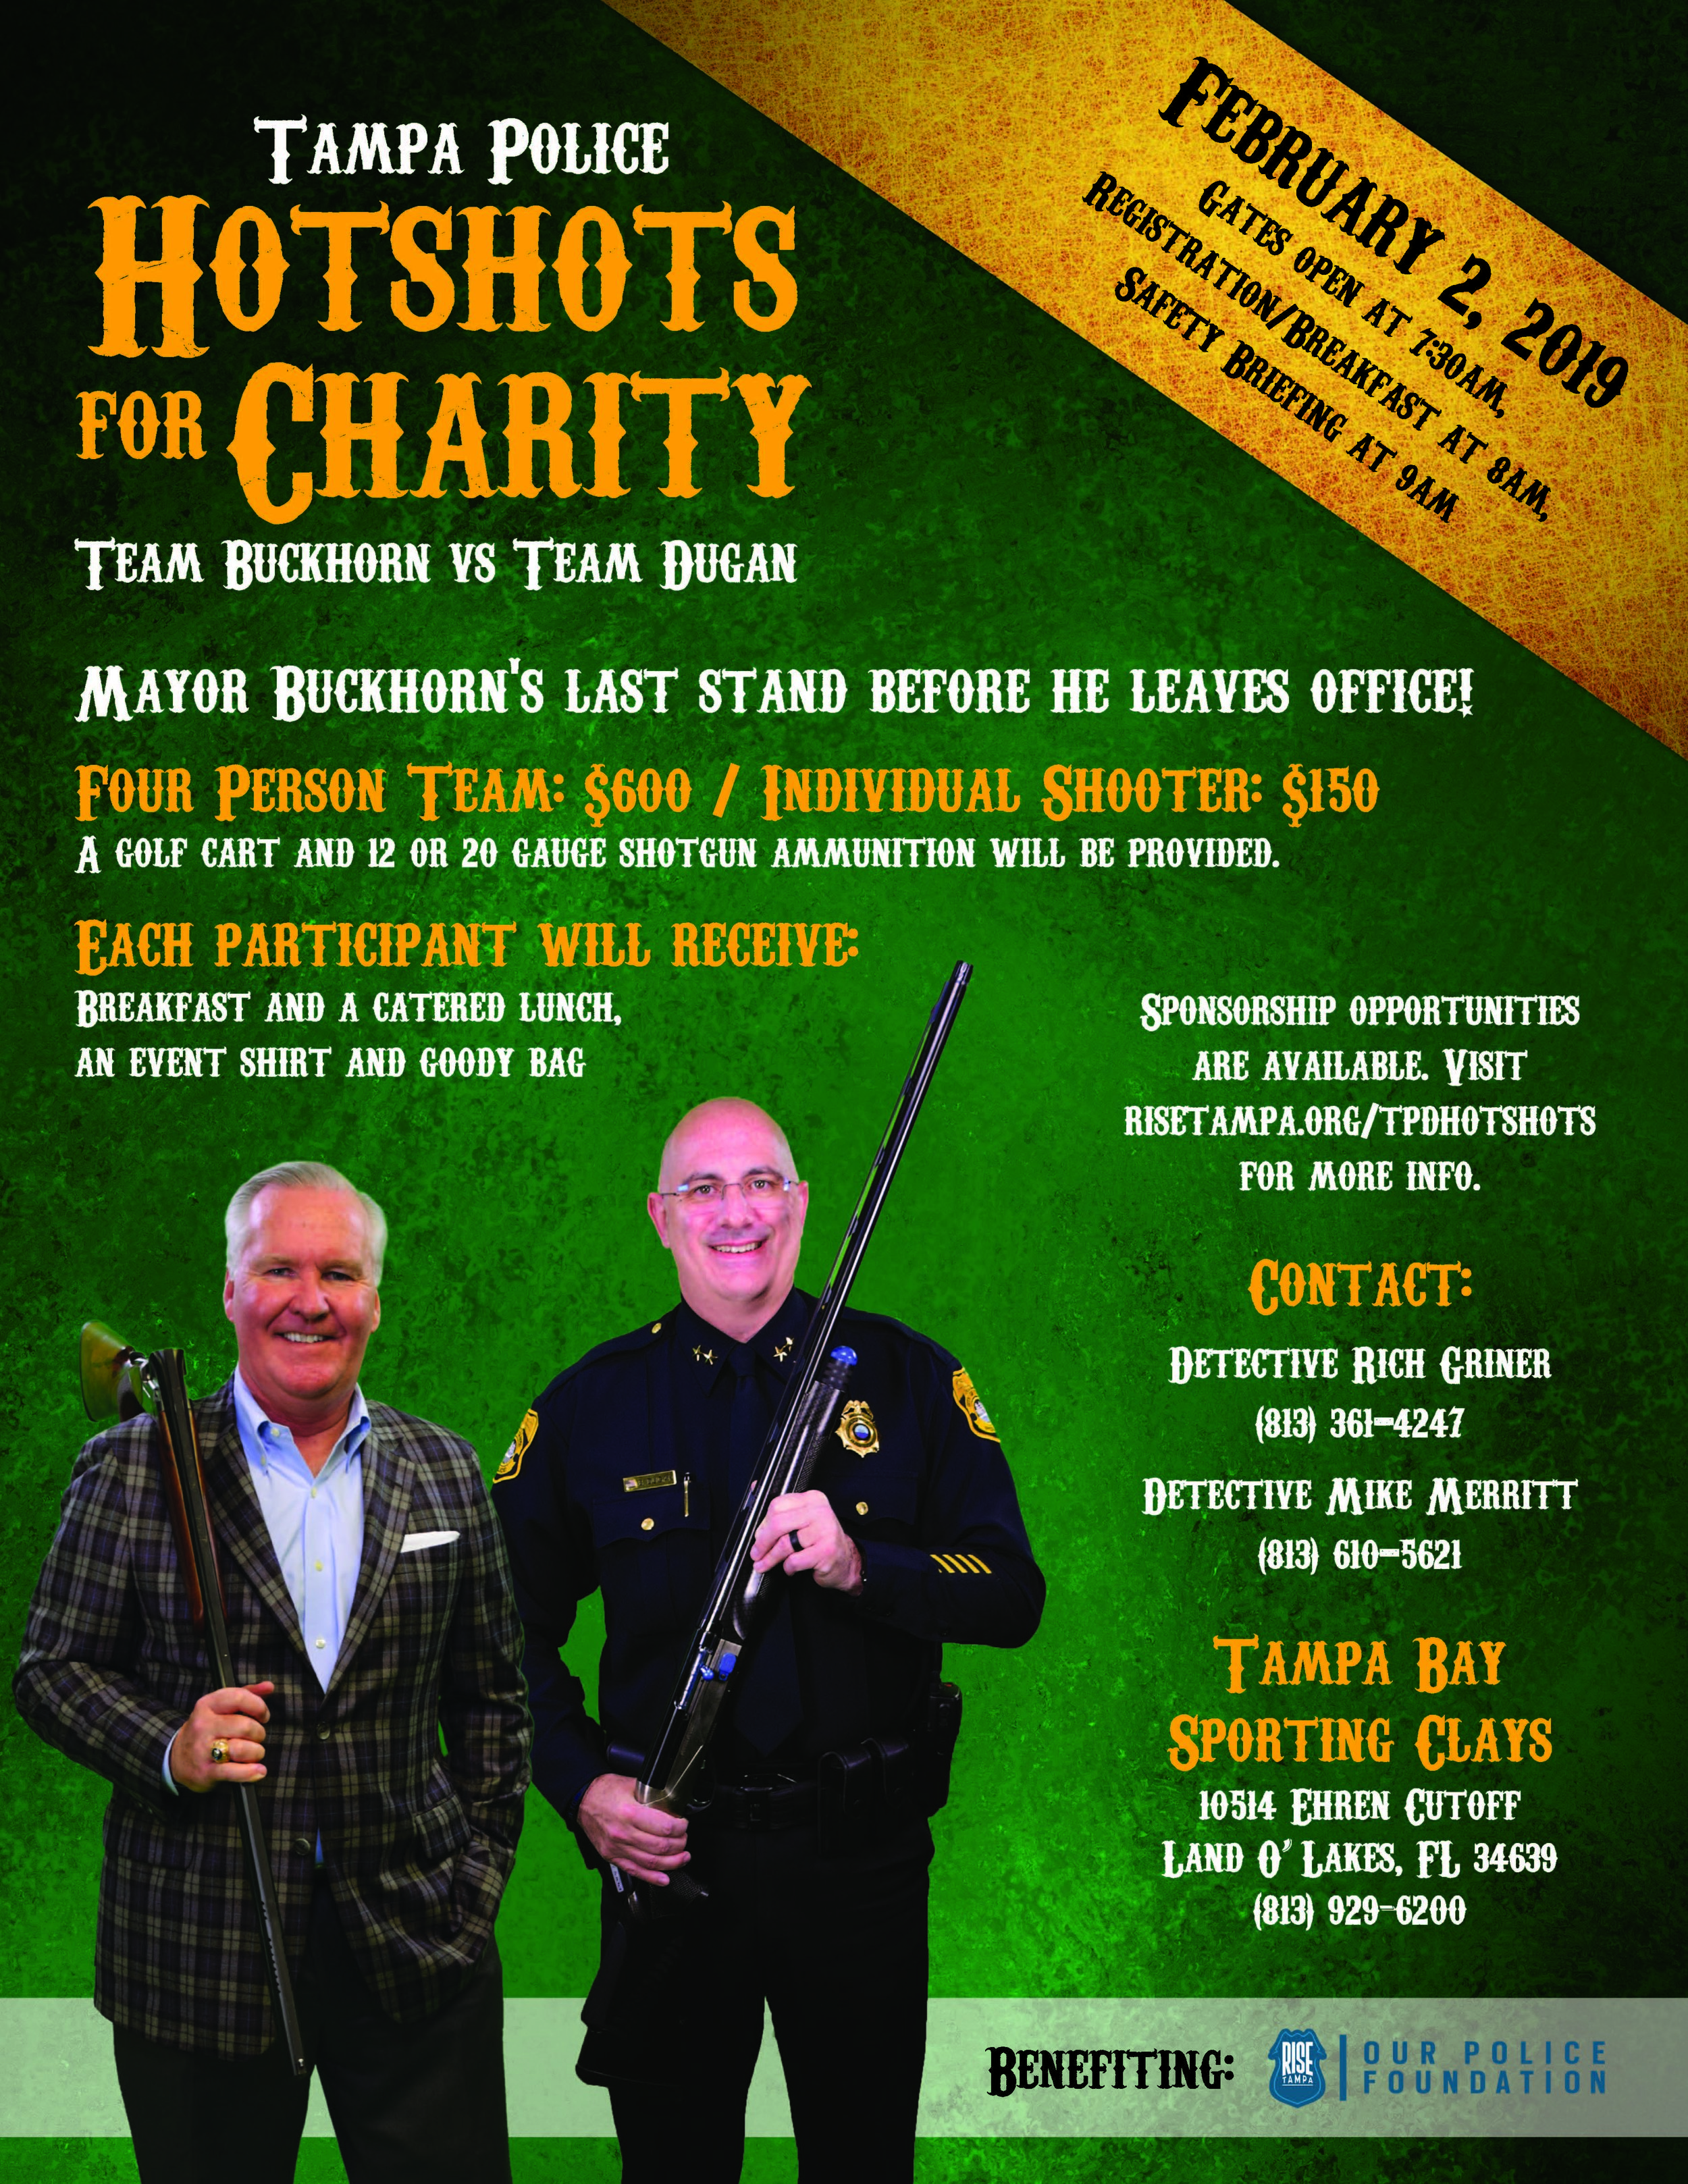 2019 Hotshots for Charity Flyer_Page_1.jpg